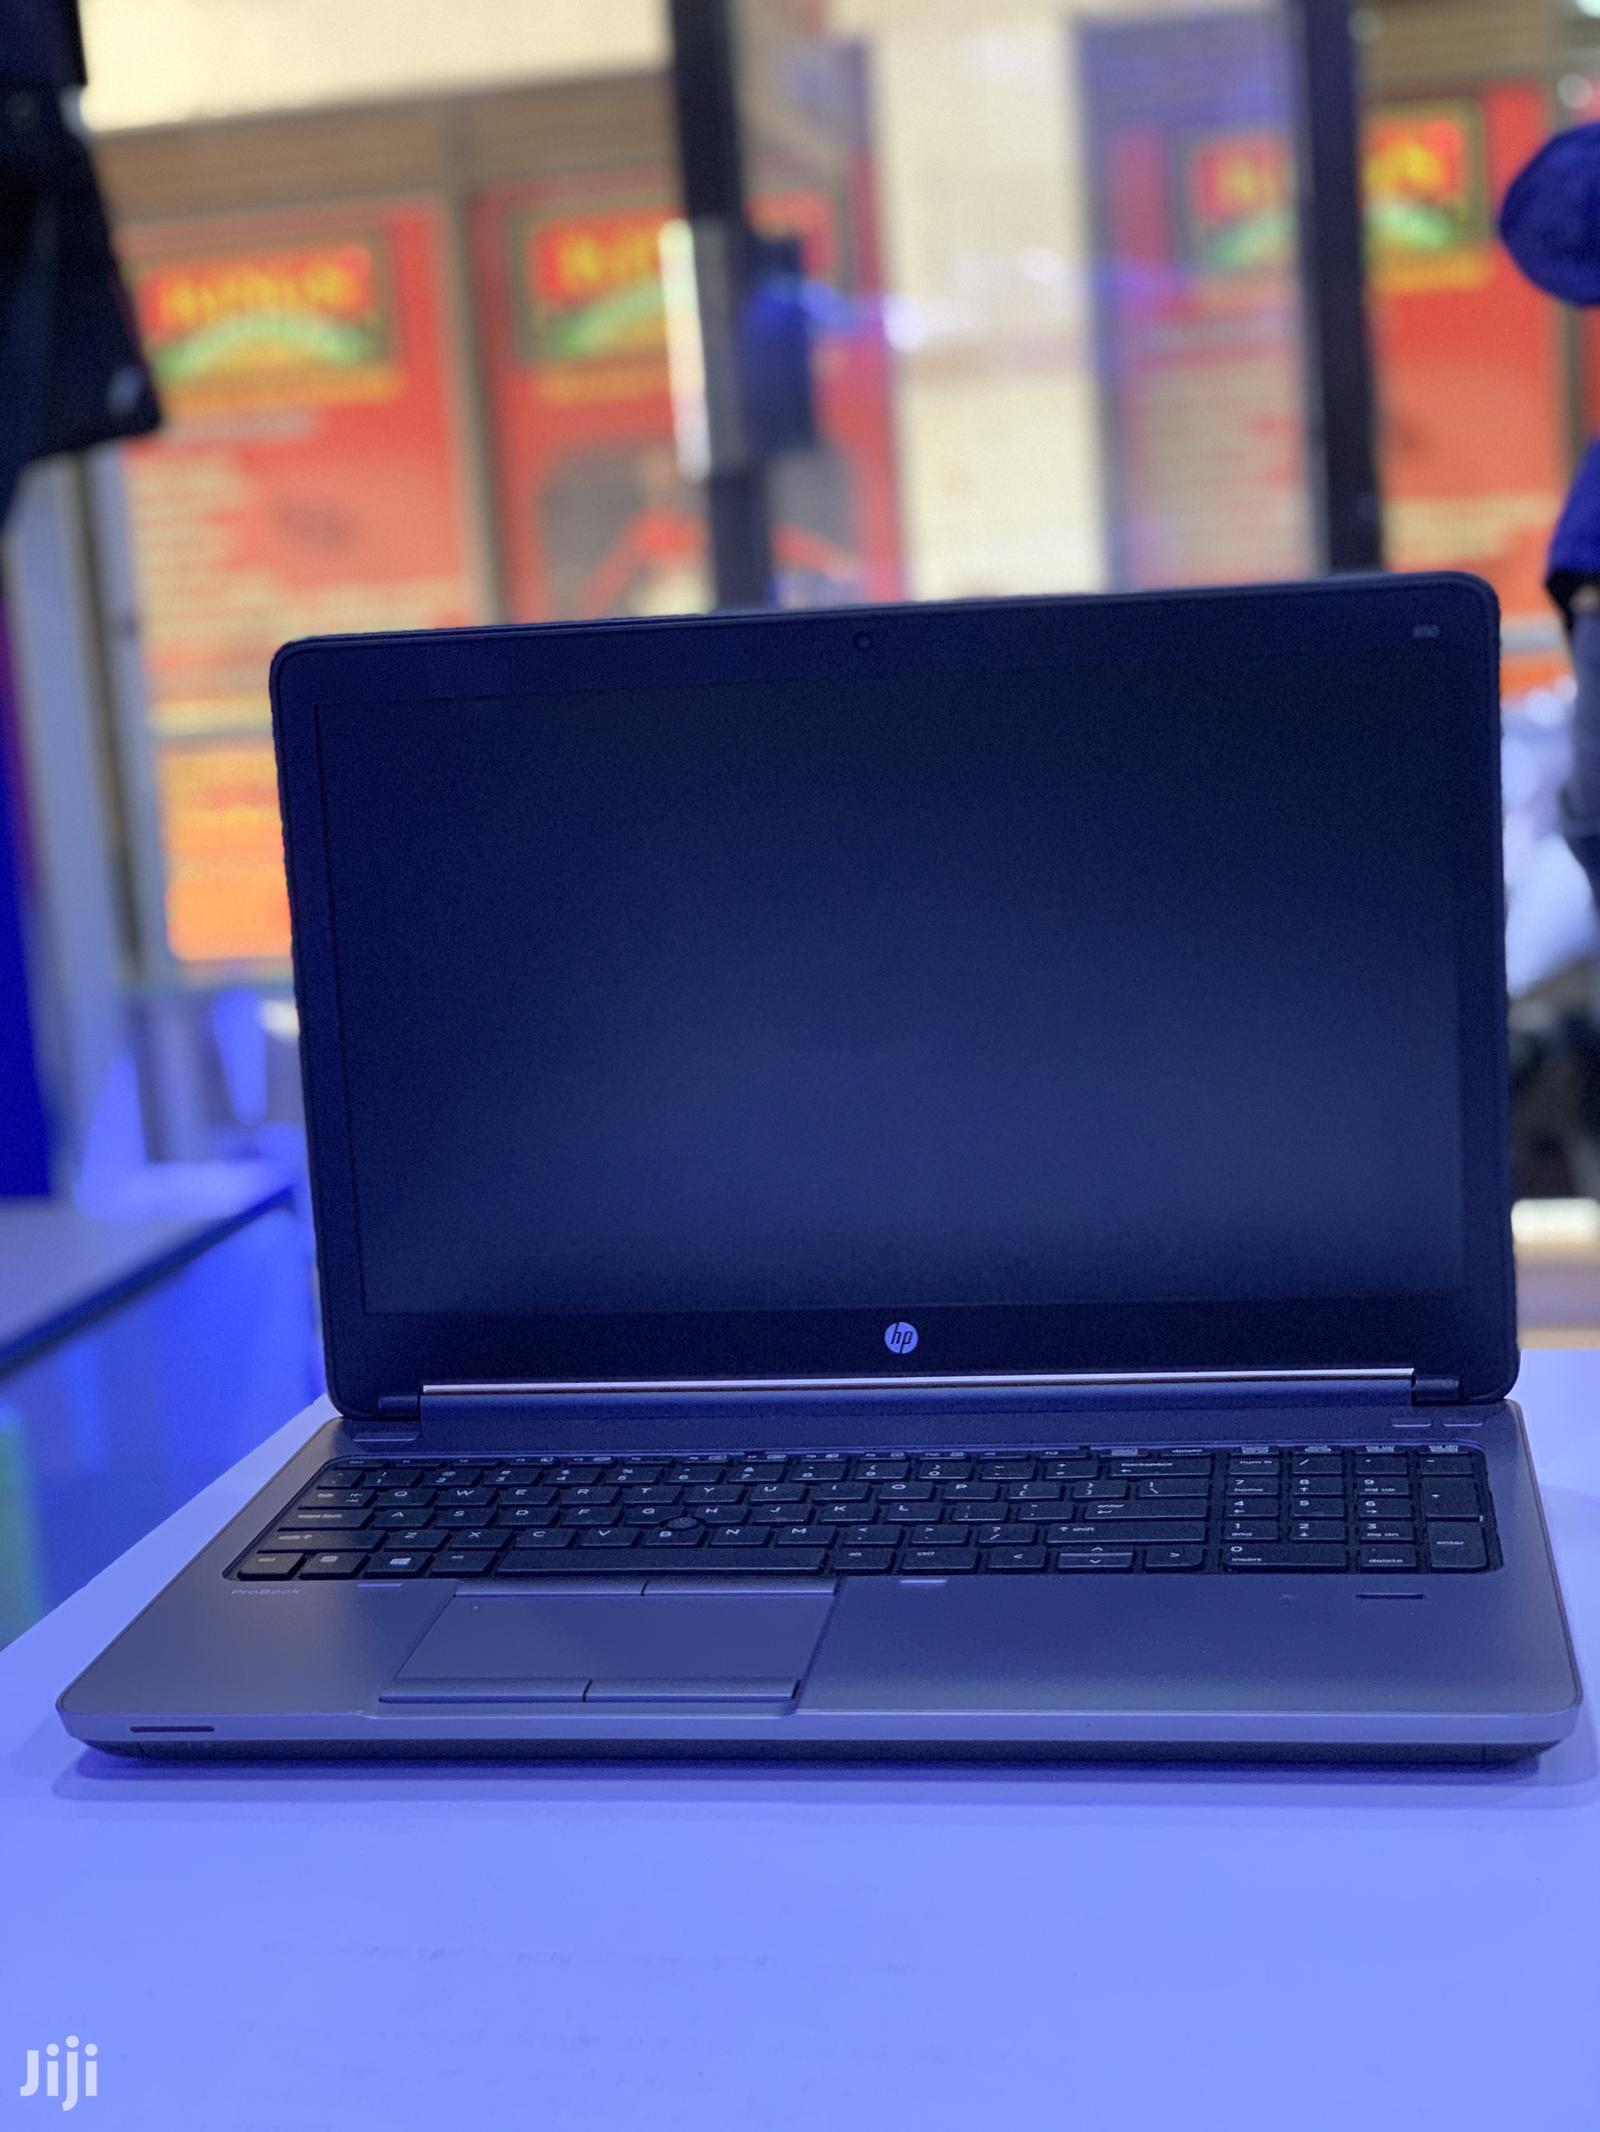 Laptop HP 650 G1 8GB Intel Core I7 HDD 500GB   Laptops & Computers for sale in Kampala, Central Region, Uganda